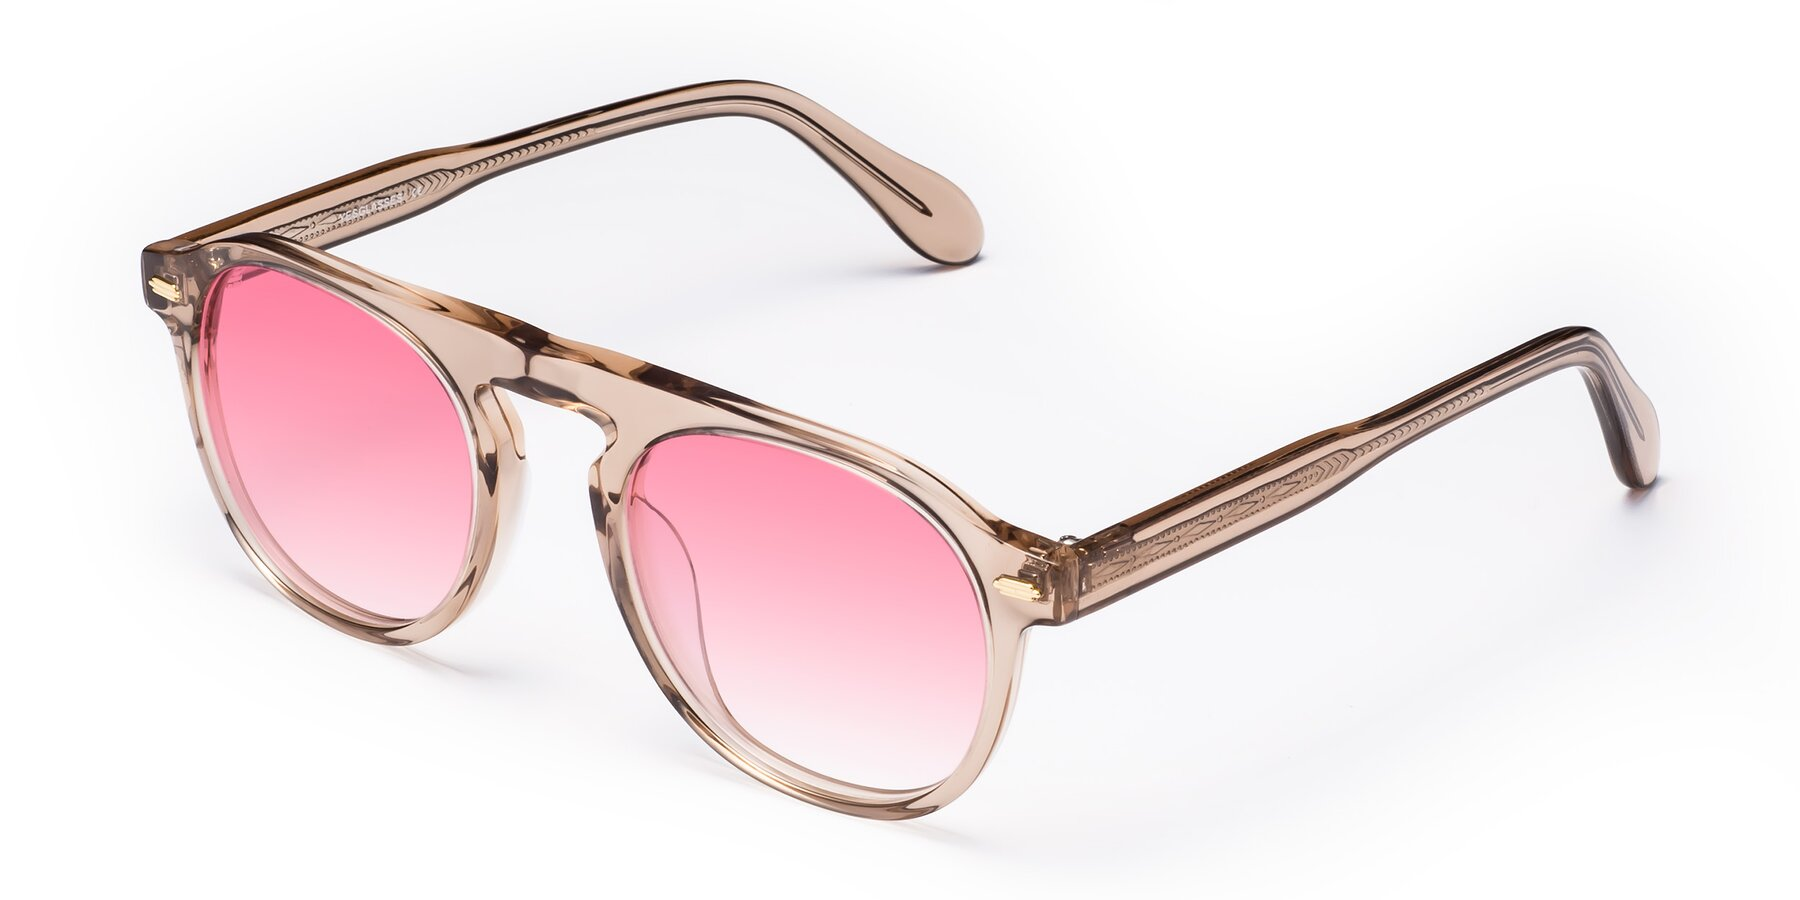 Angle of Mufasa in light Brown with Pink Gradient Lenses